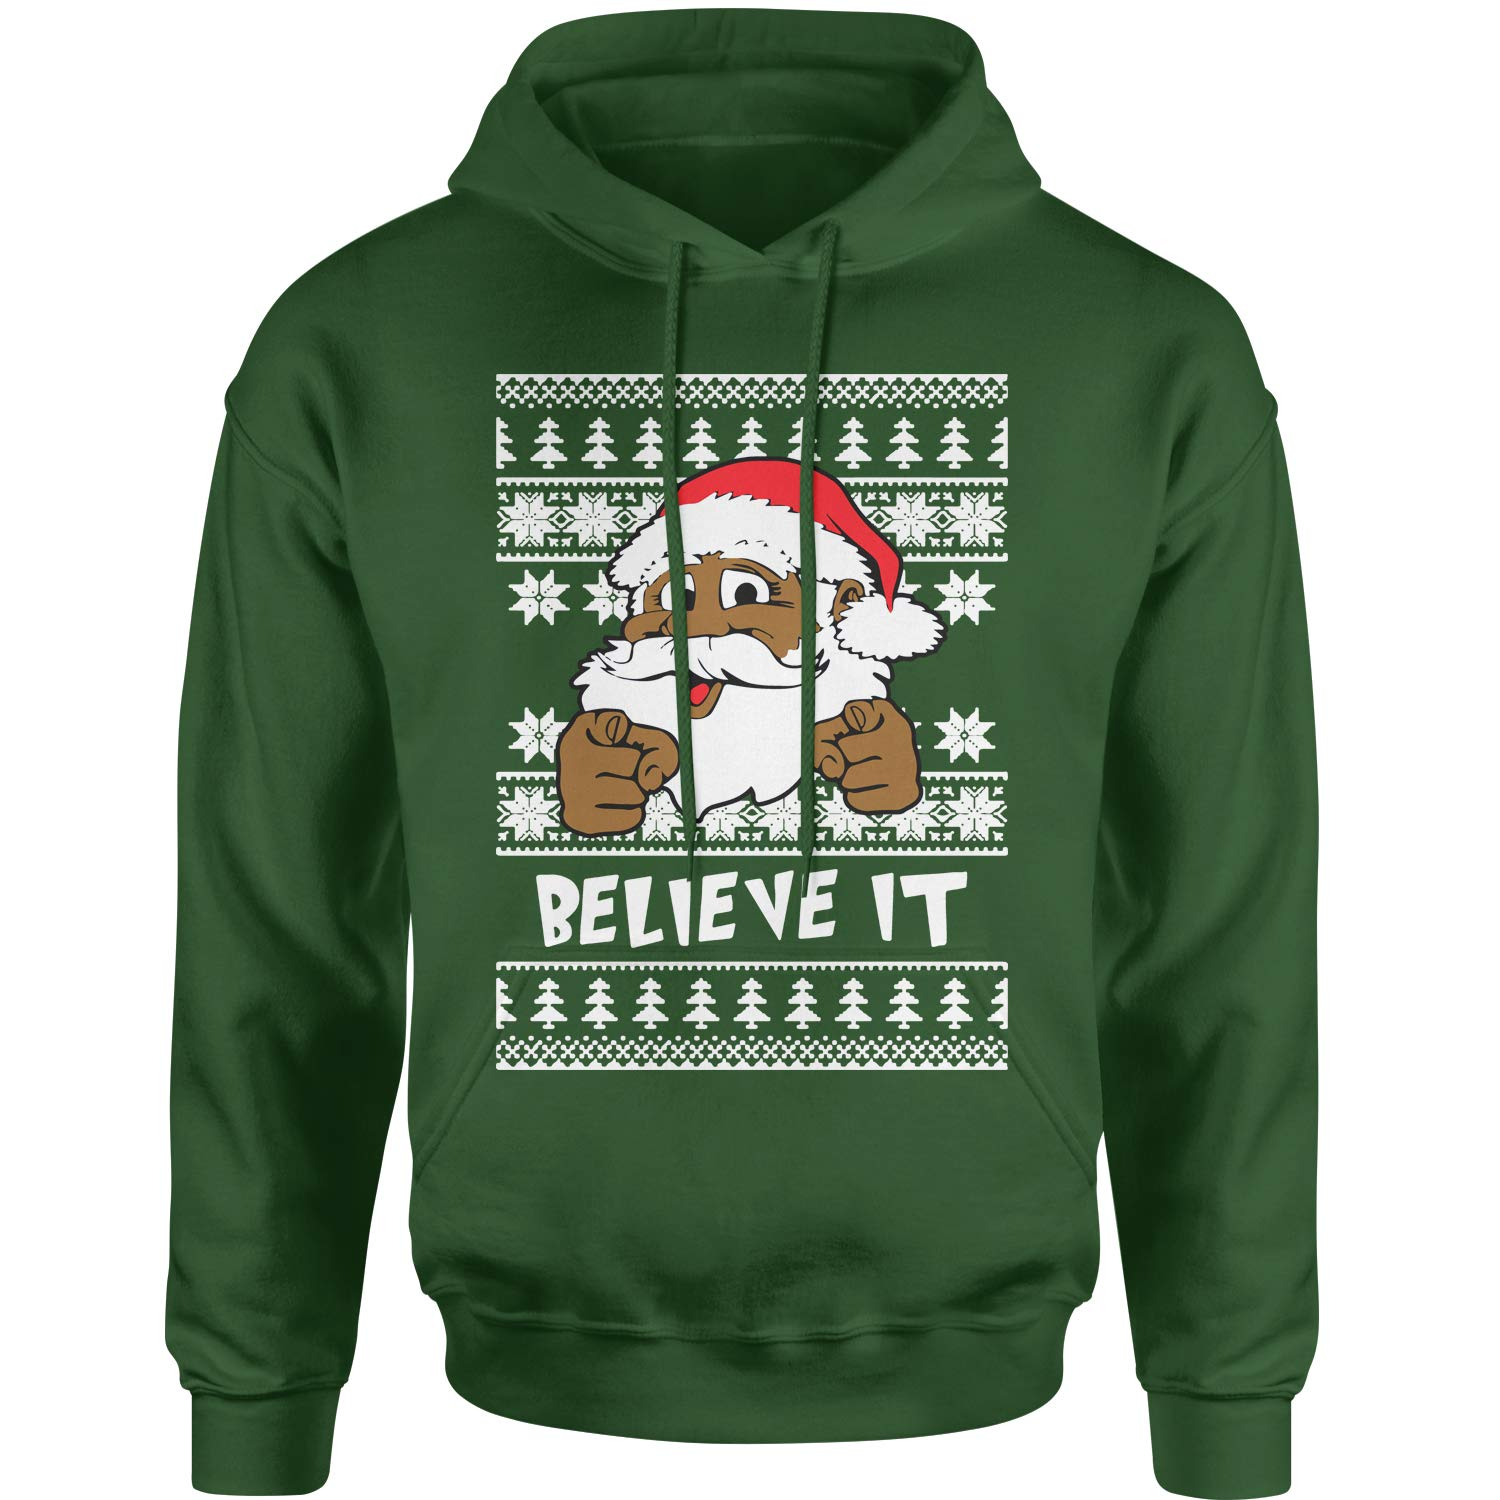 Motivated Culture Believe It Santa Clause Ugly Christmas Adult Unisex 6735 Shirts